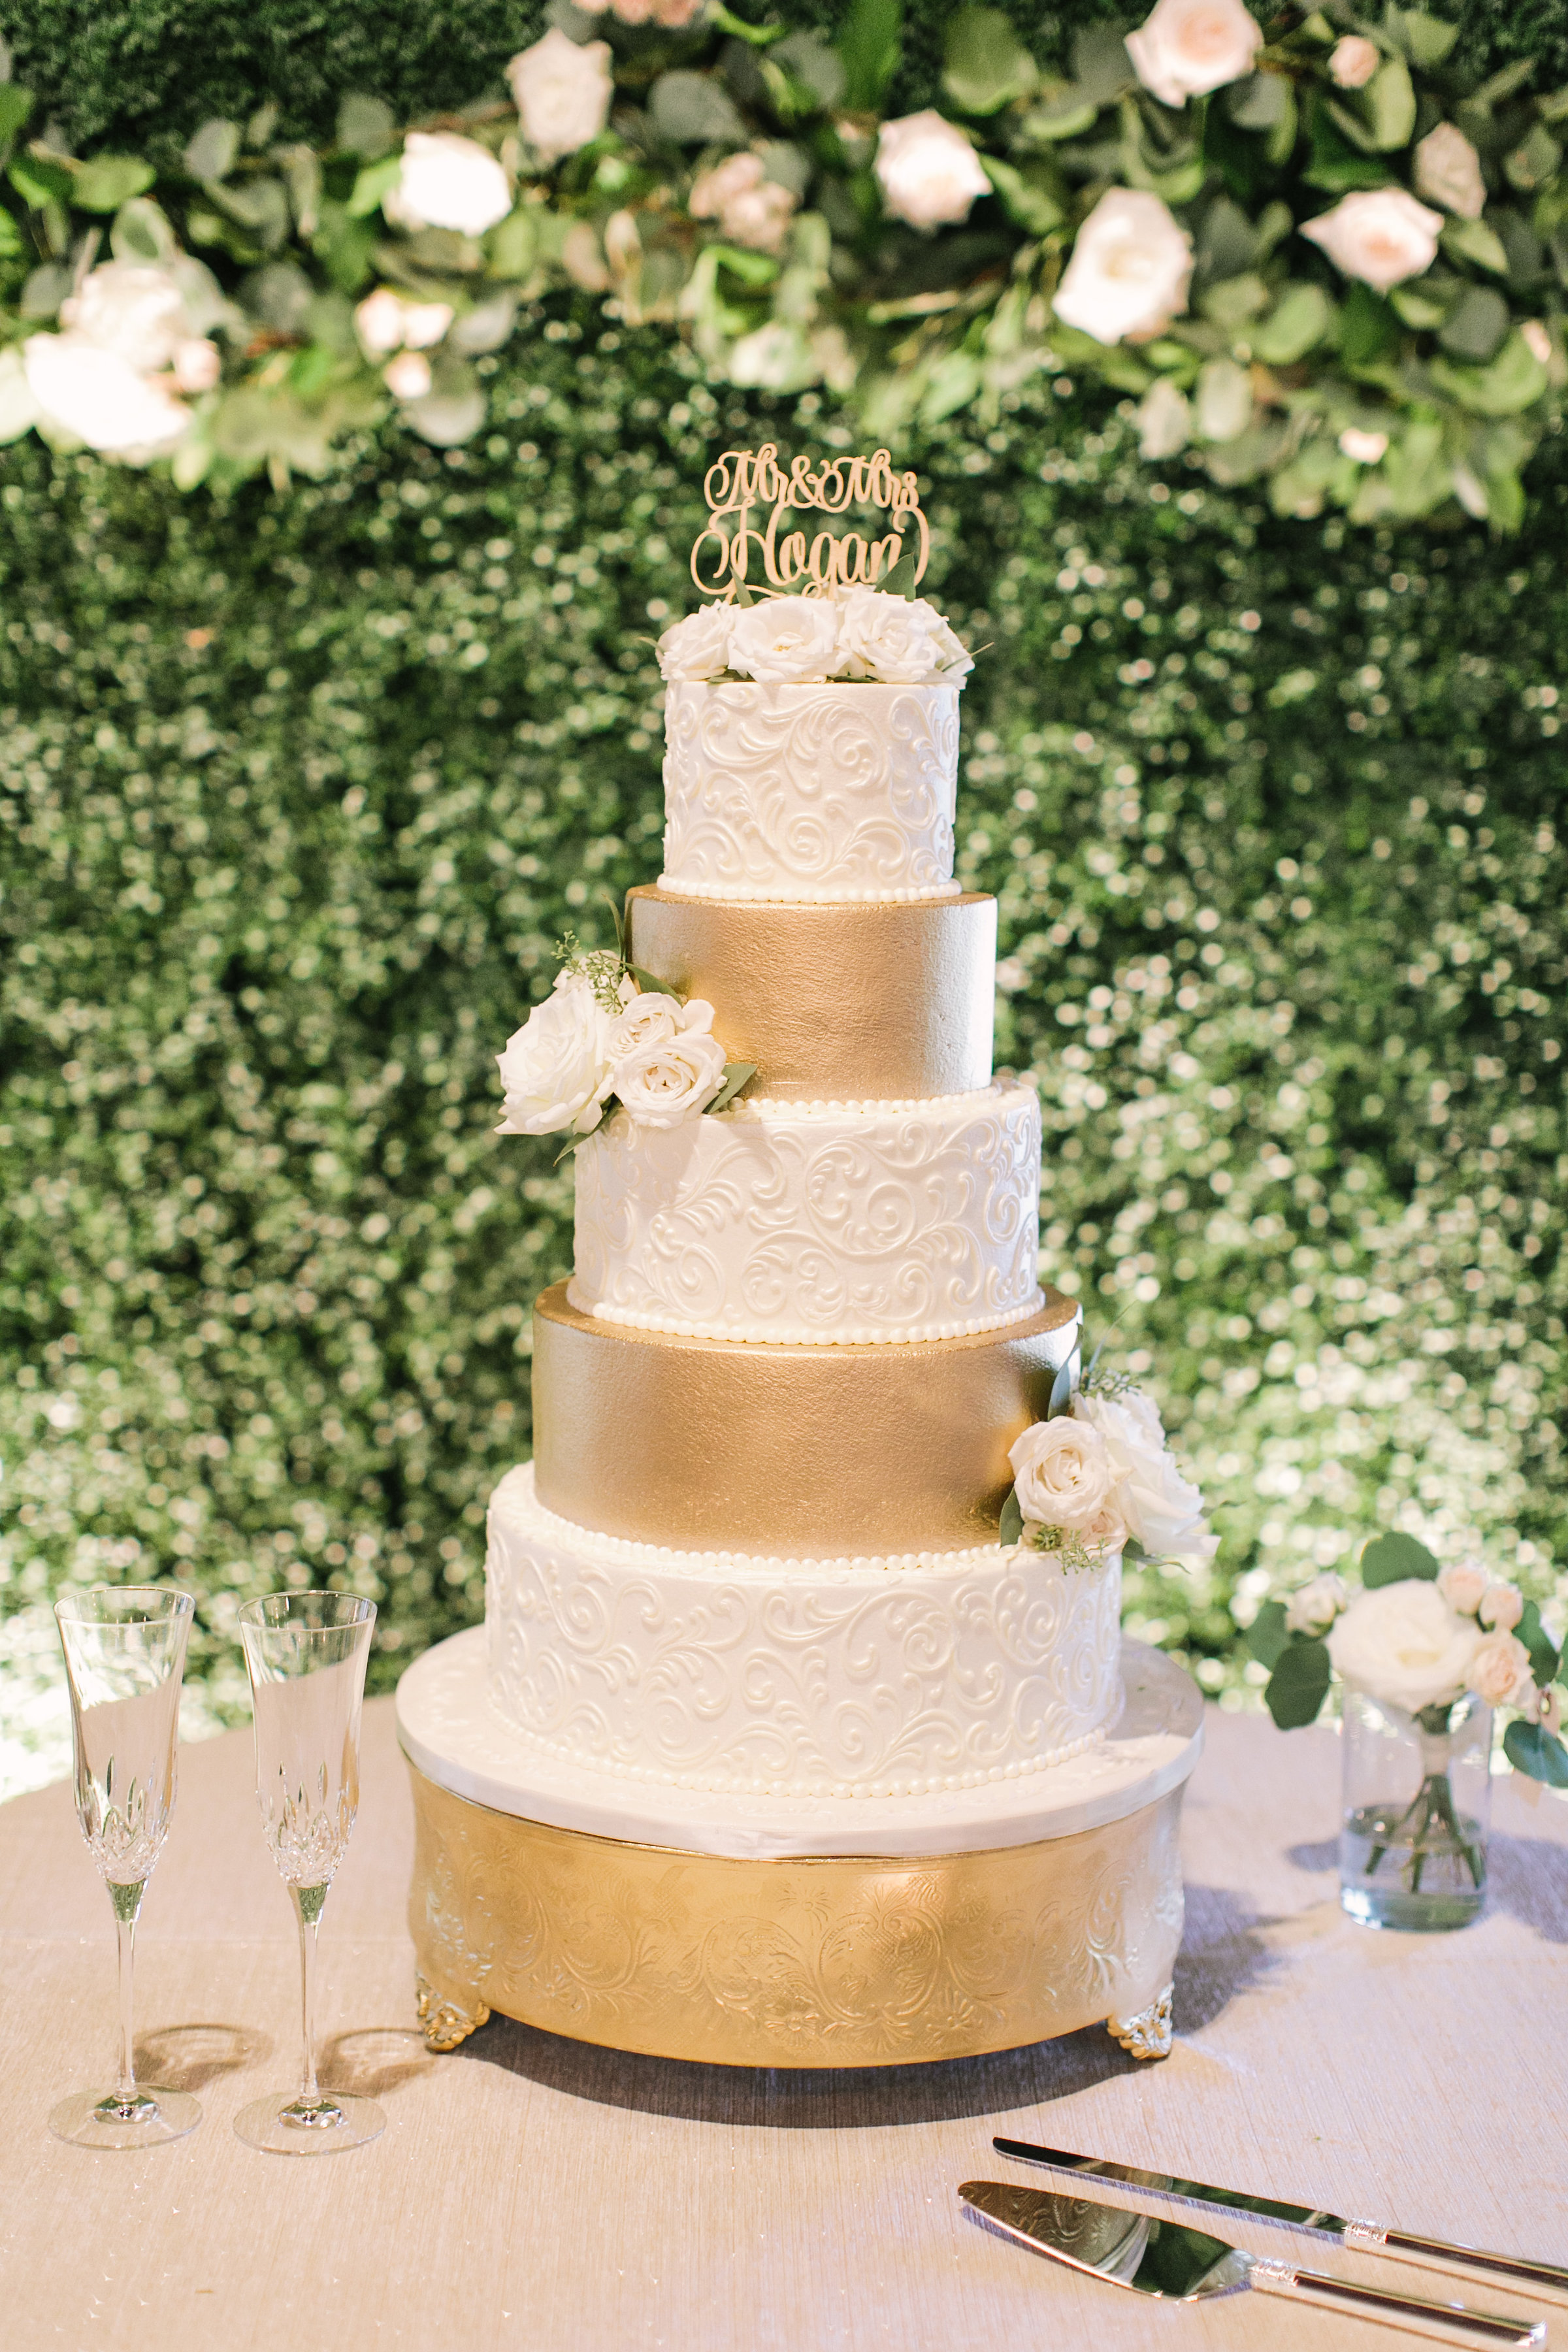 white-gold-cake-floral-details-greenery-backdrop-wedding-by-maxit-flower-design-in-houston-texas